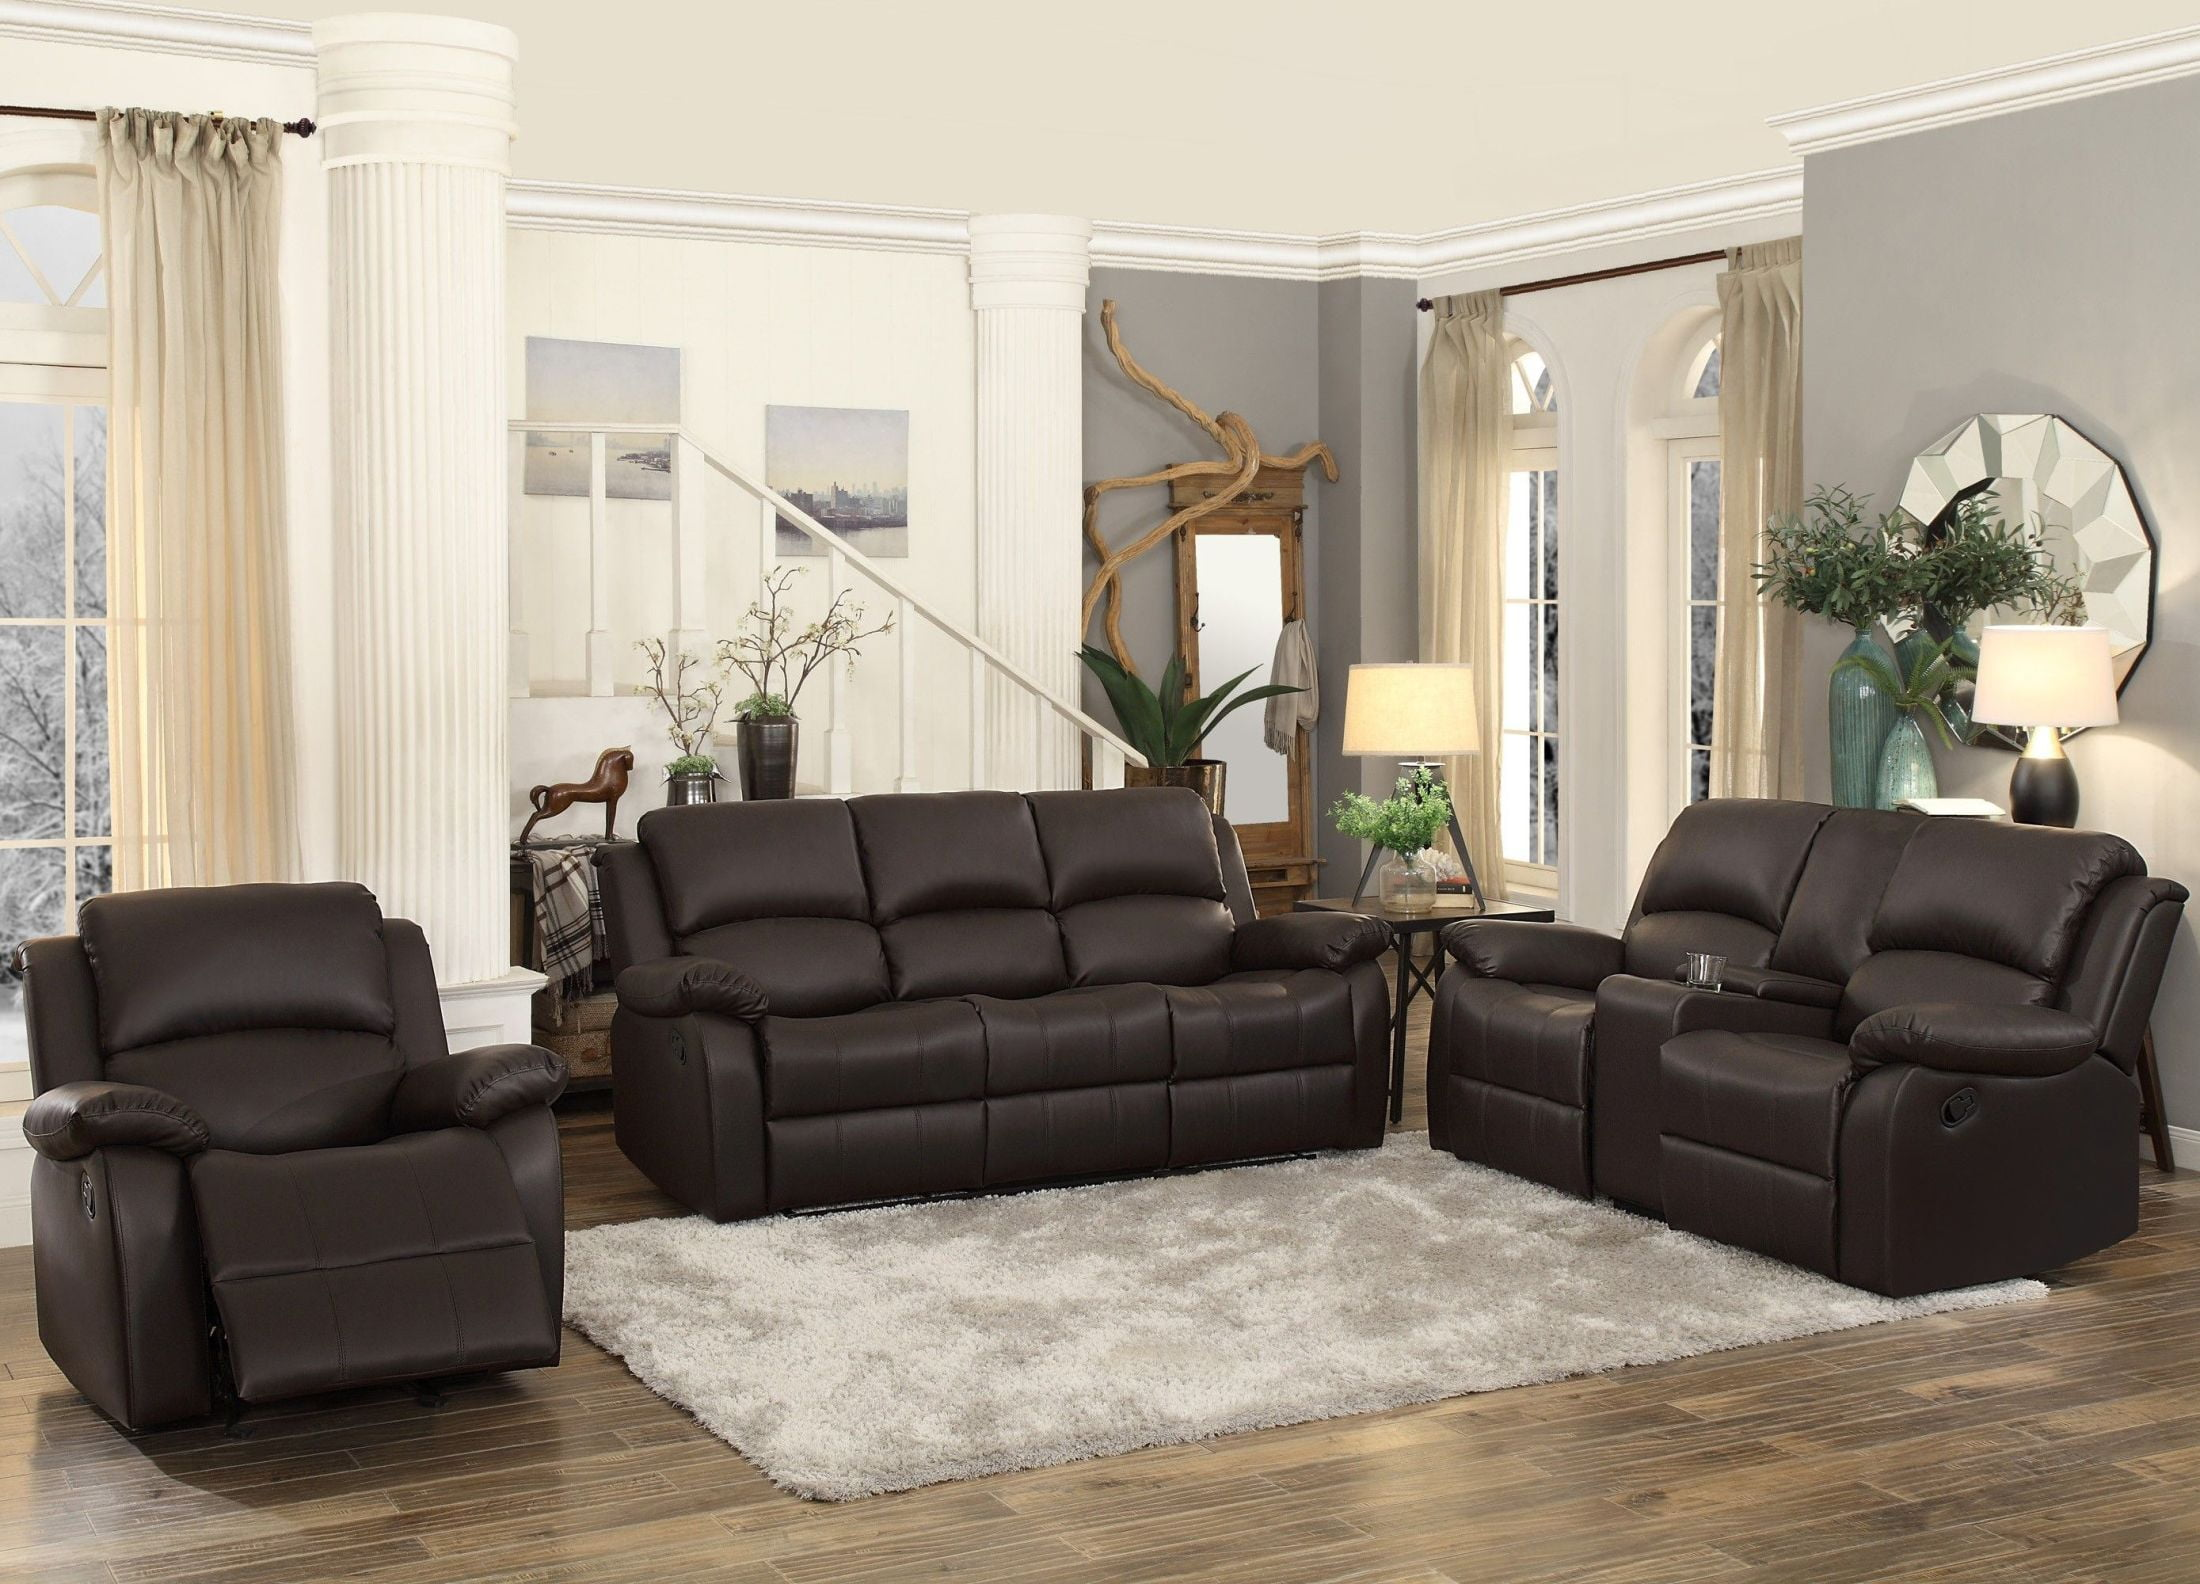 Terrific Clarkdale Dark Brown Double Reclining Living Room Set With Drop Down Table Gmtry Best Dining Table And Chair Ideas Images Gmtryco